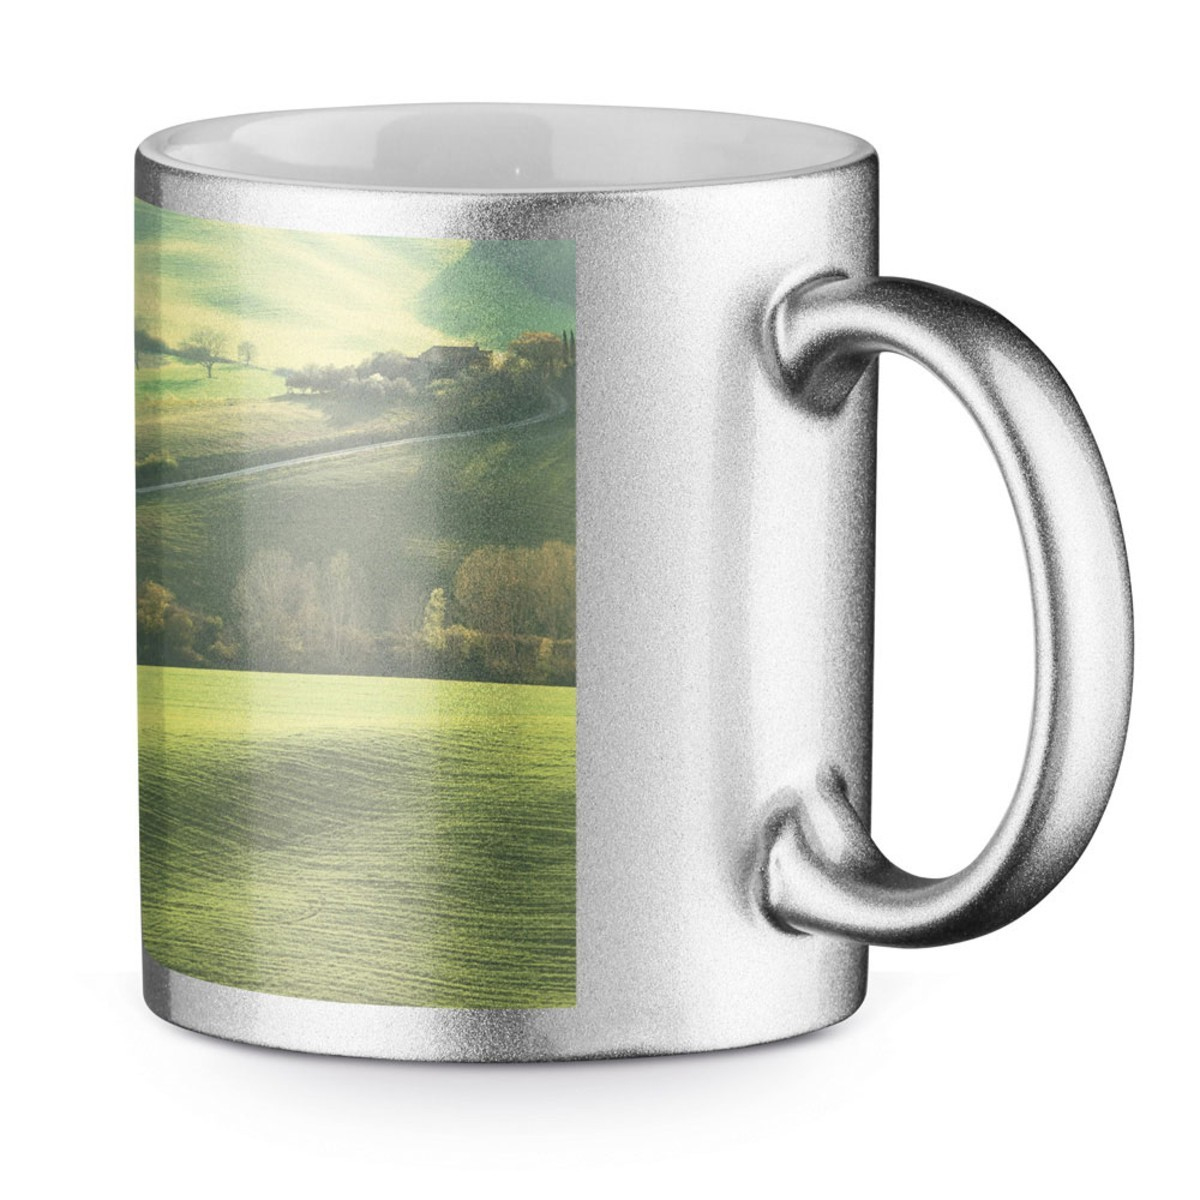 Silver Dye-Sublimation Printed Mugs